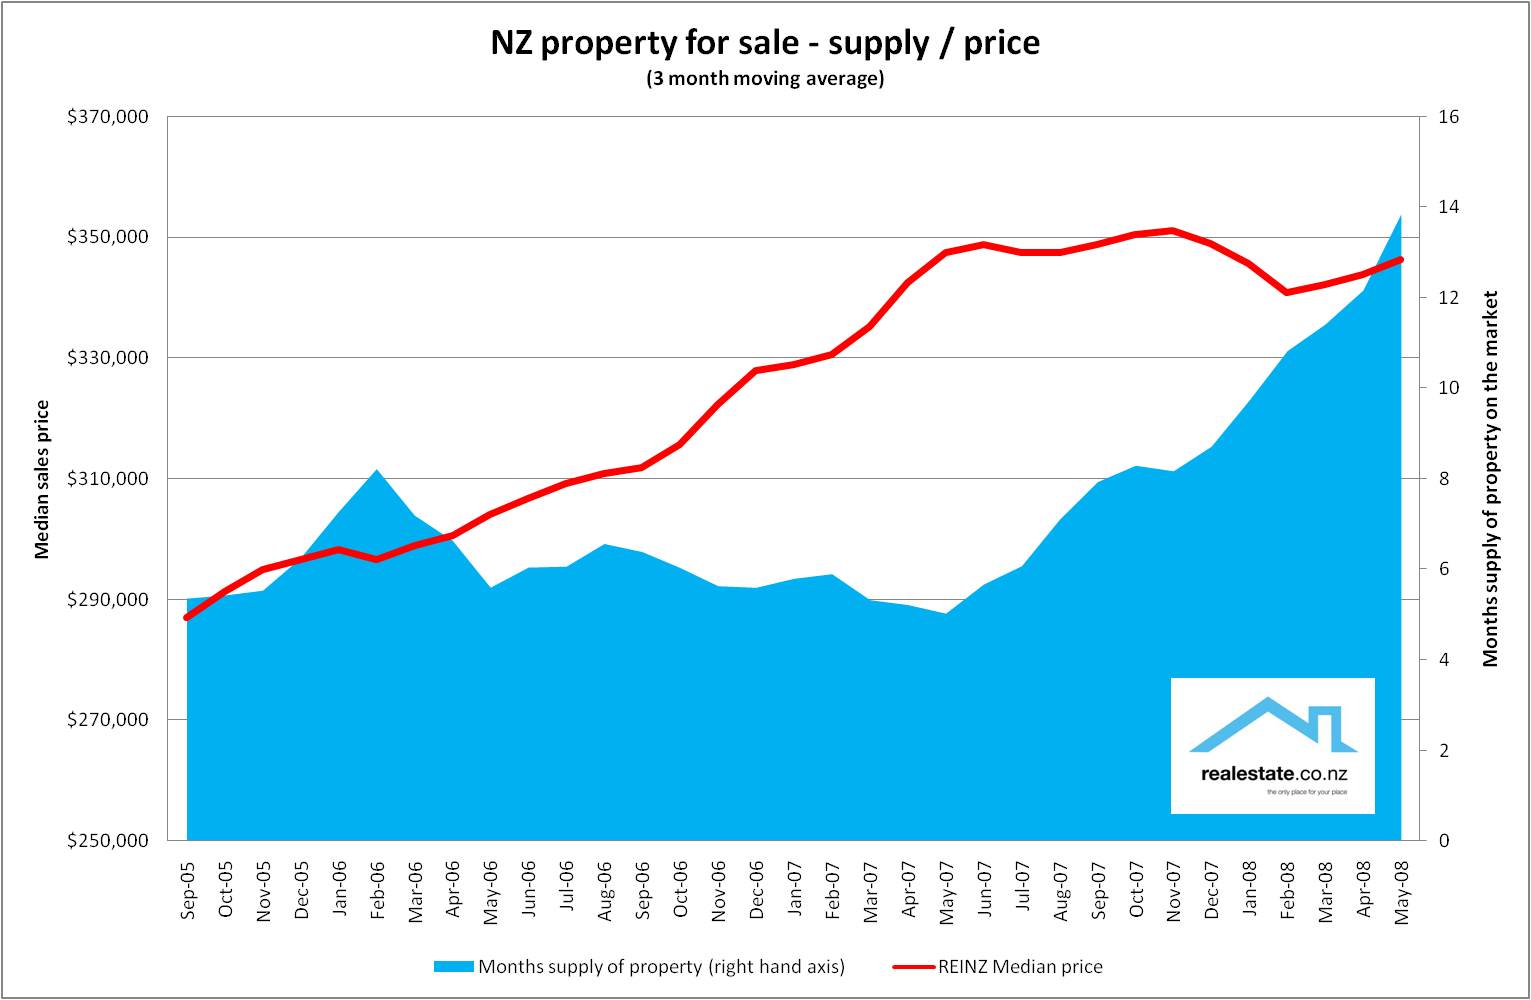 Inventory of property on the market in NZ - realestate.co.nz